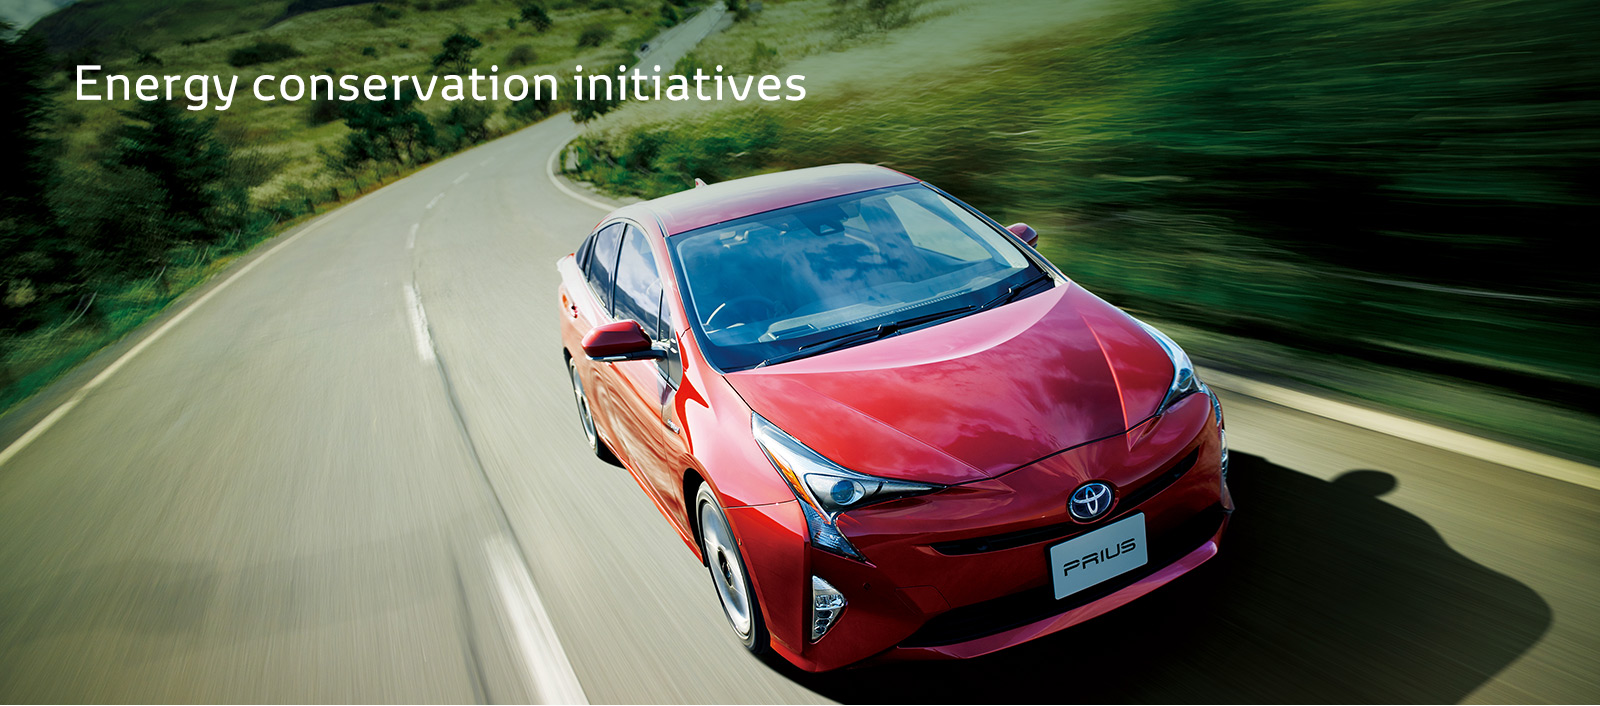 Toyota patents a unique way to increase range of its cars using solar energy